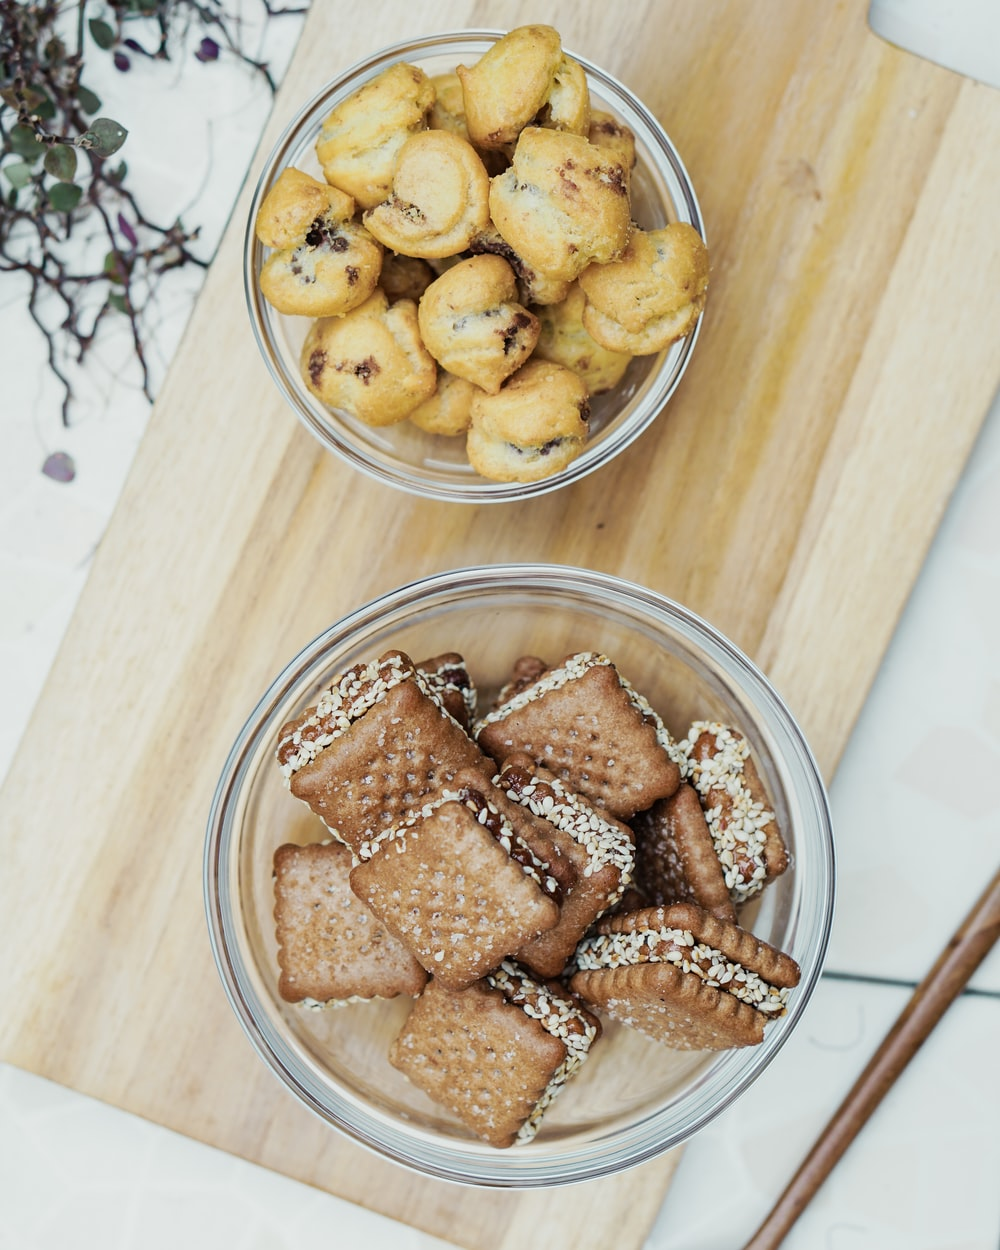 brown cookies on clear glass bowl